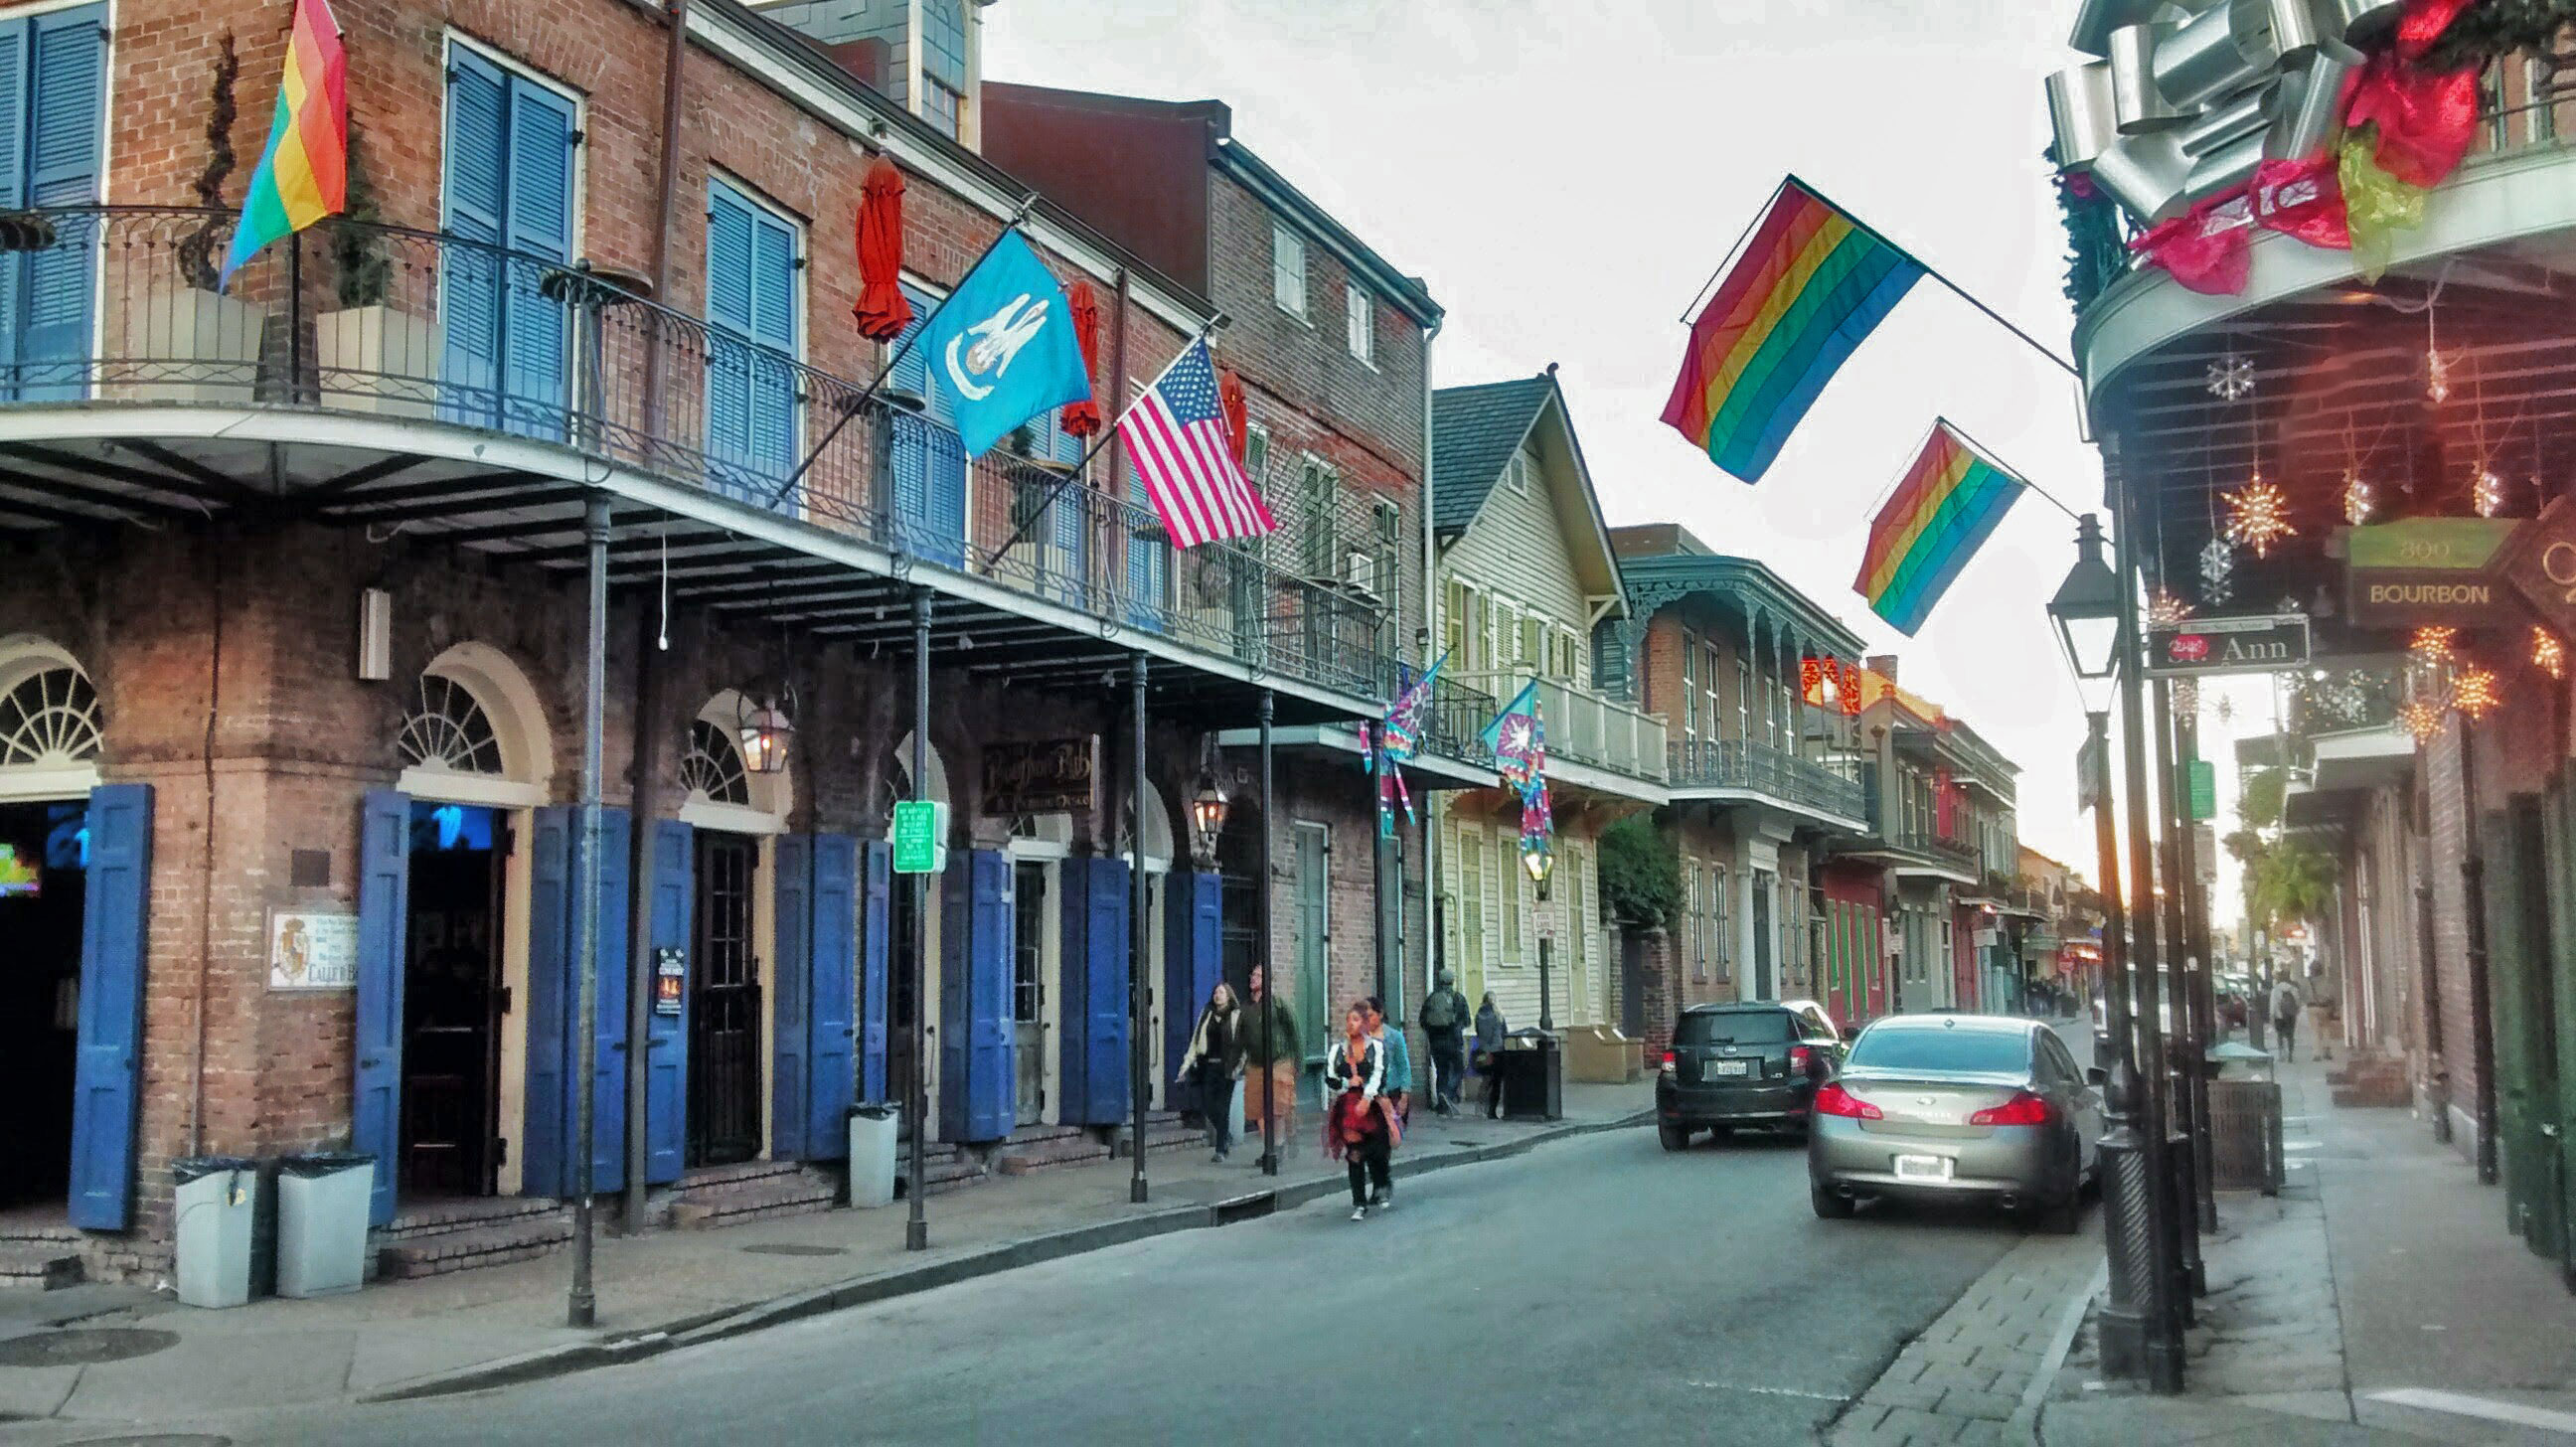 French Quarter 1024x575 - Visiting New Orleans In January: Top 8 Things To Do